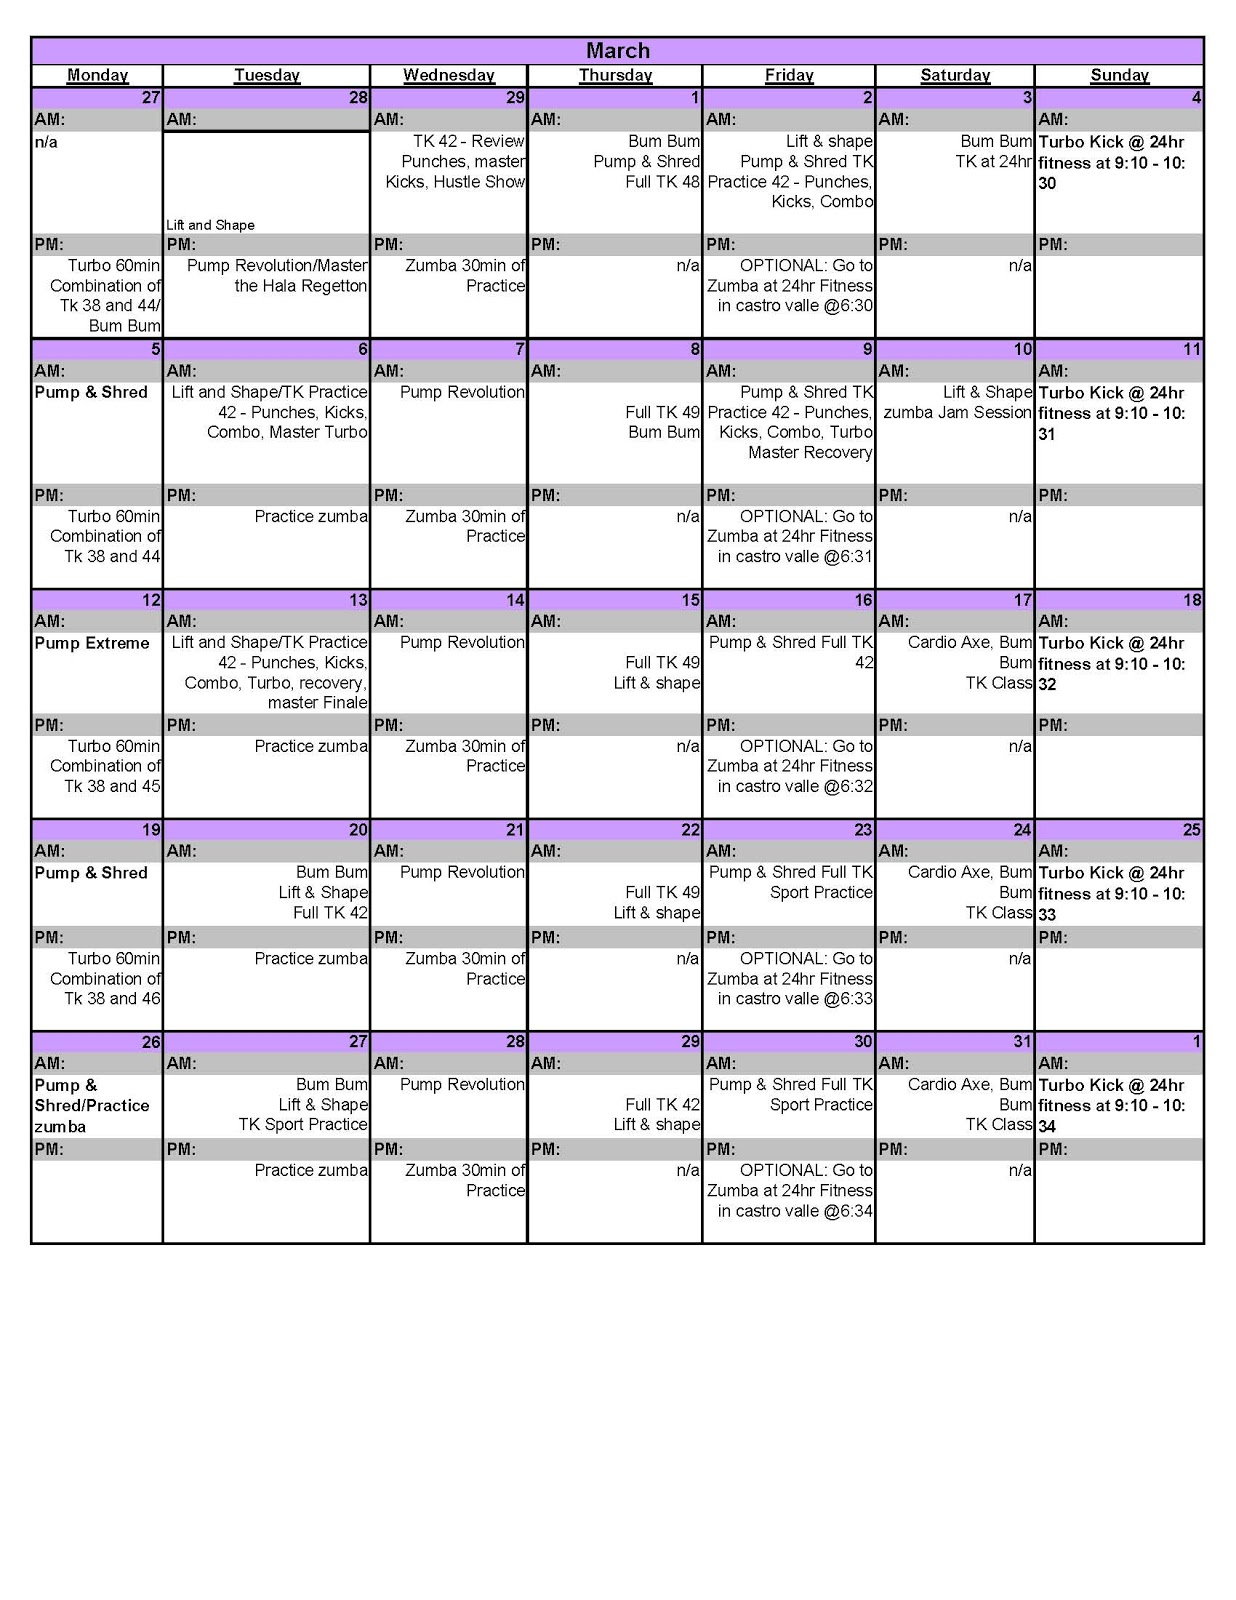 Advanced Turbo Jam Workout Schedule http://carmearroyo.blogspot.com ...